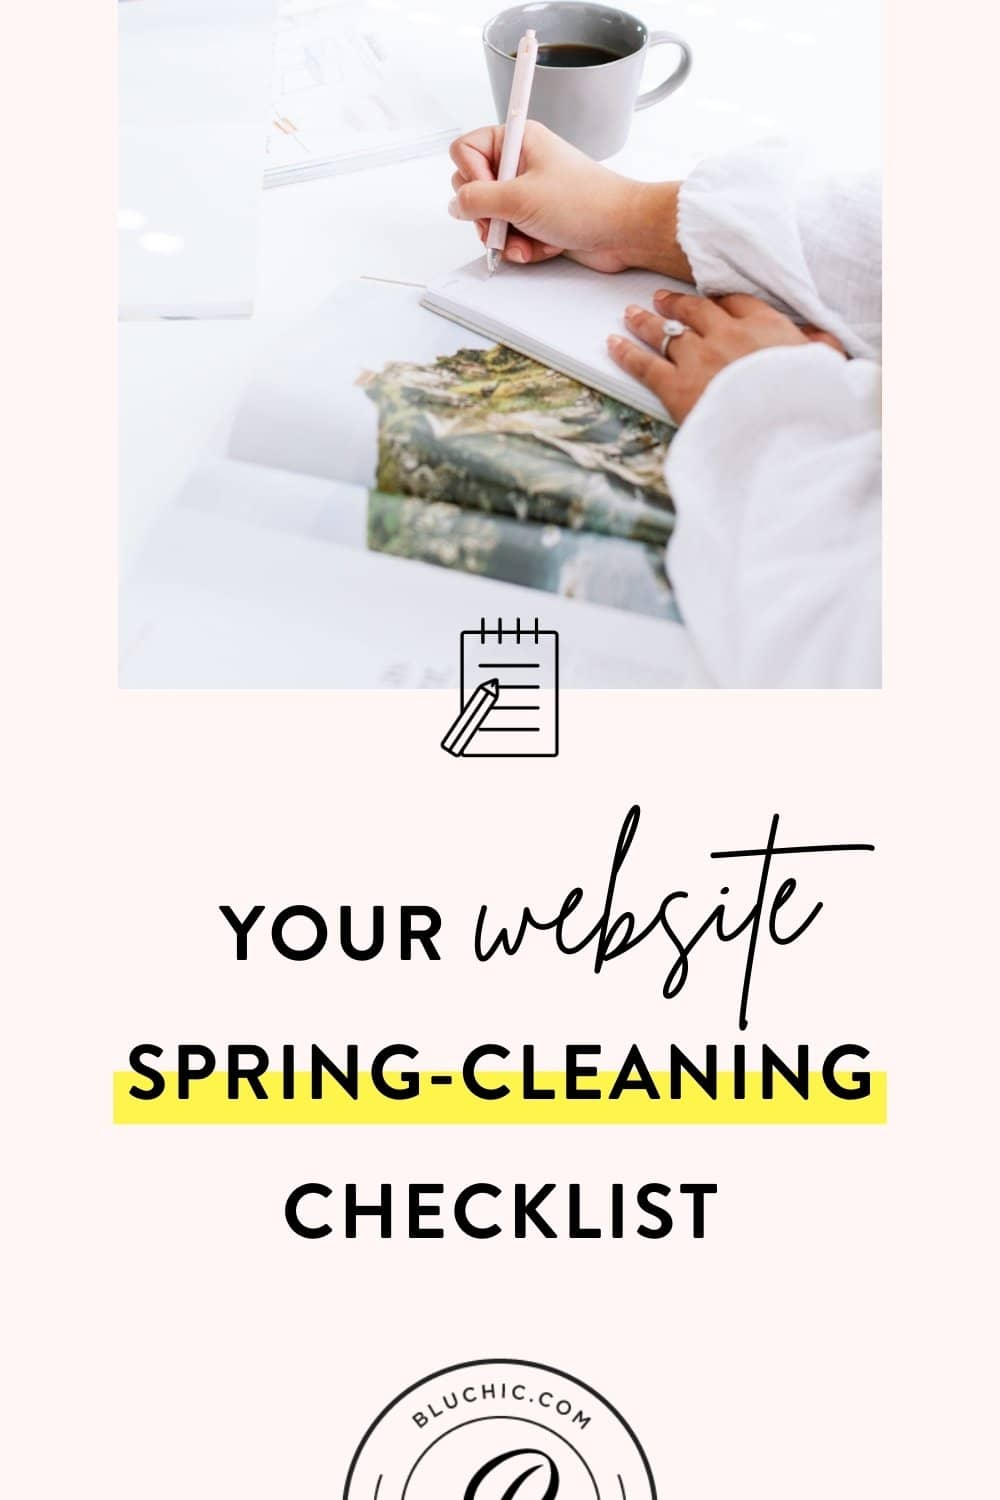 Your Website and Business Spring-Cleaning Checklist | Spring has sprung, which means it's time to do some spring cleaning on your website! We've crafted the ultimate checklist to help you do just that.